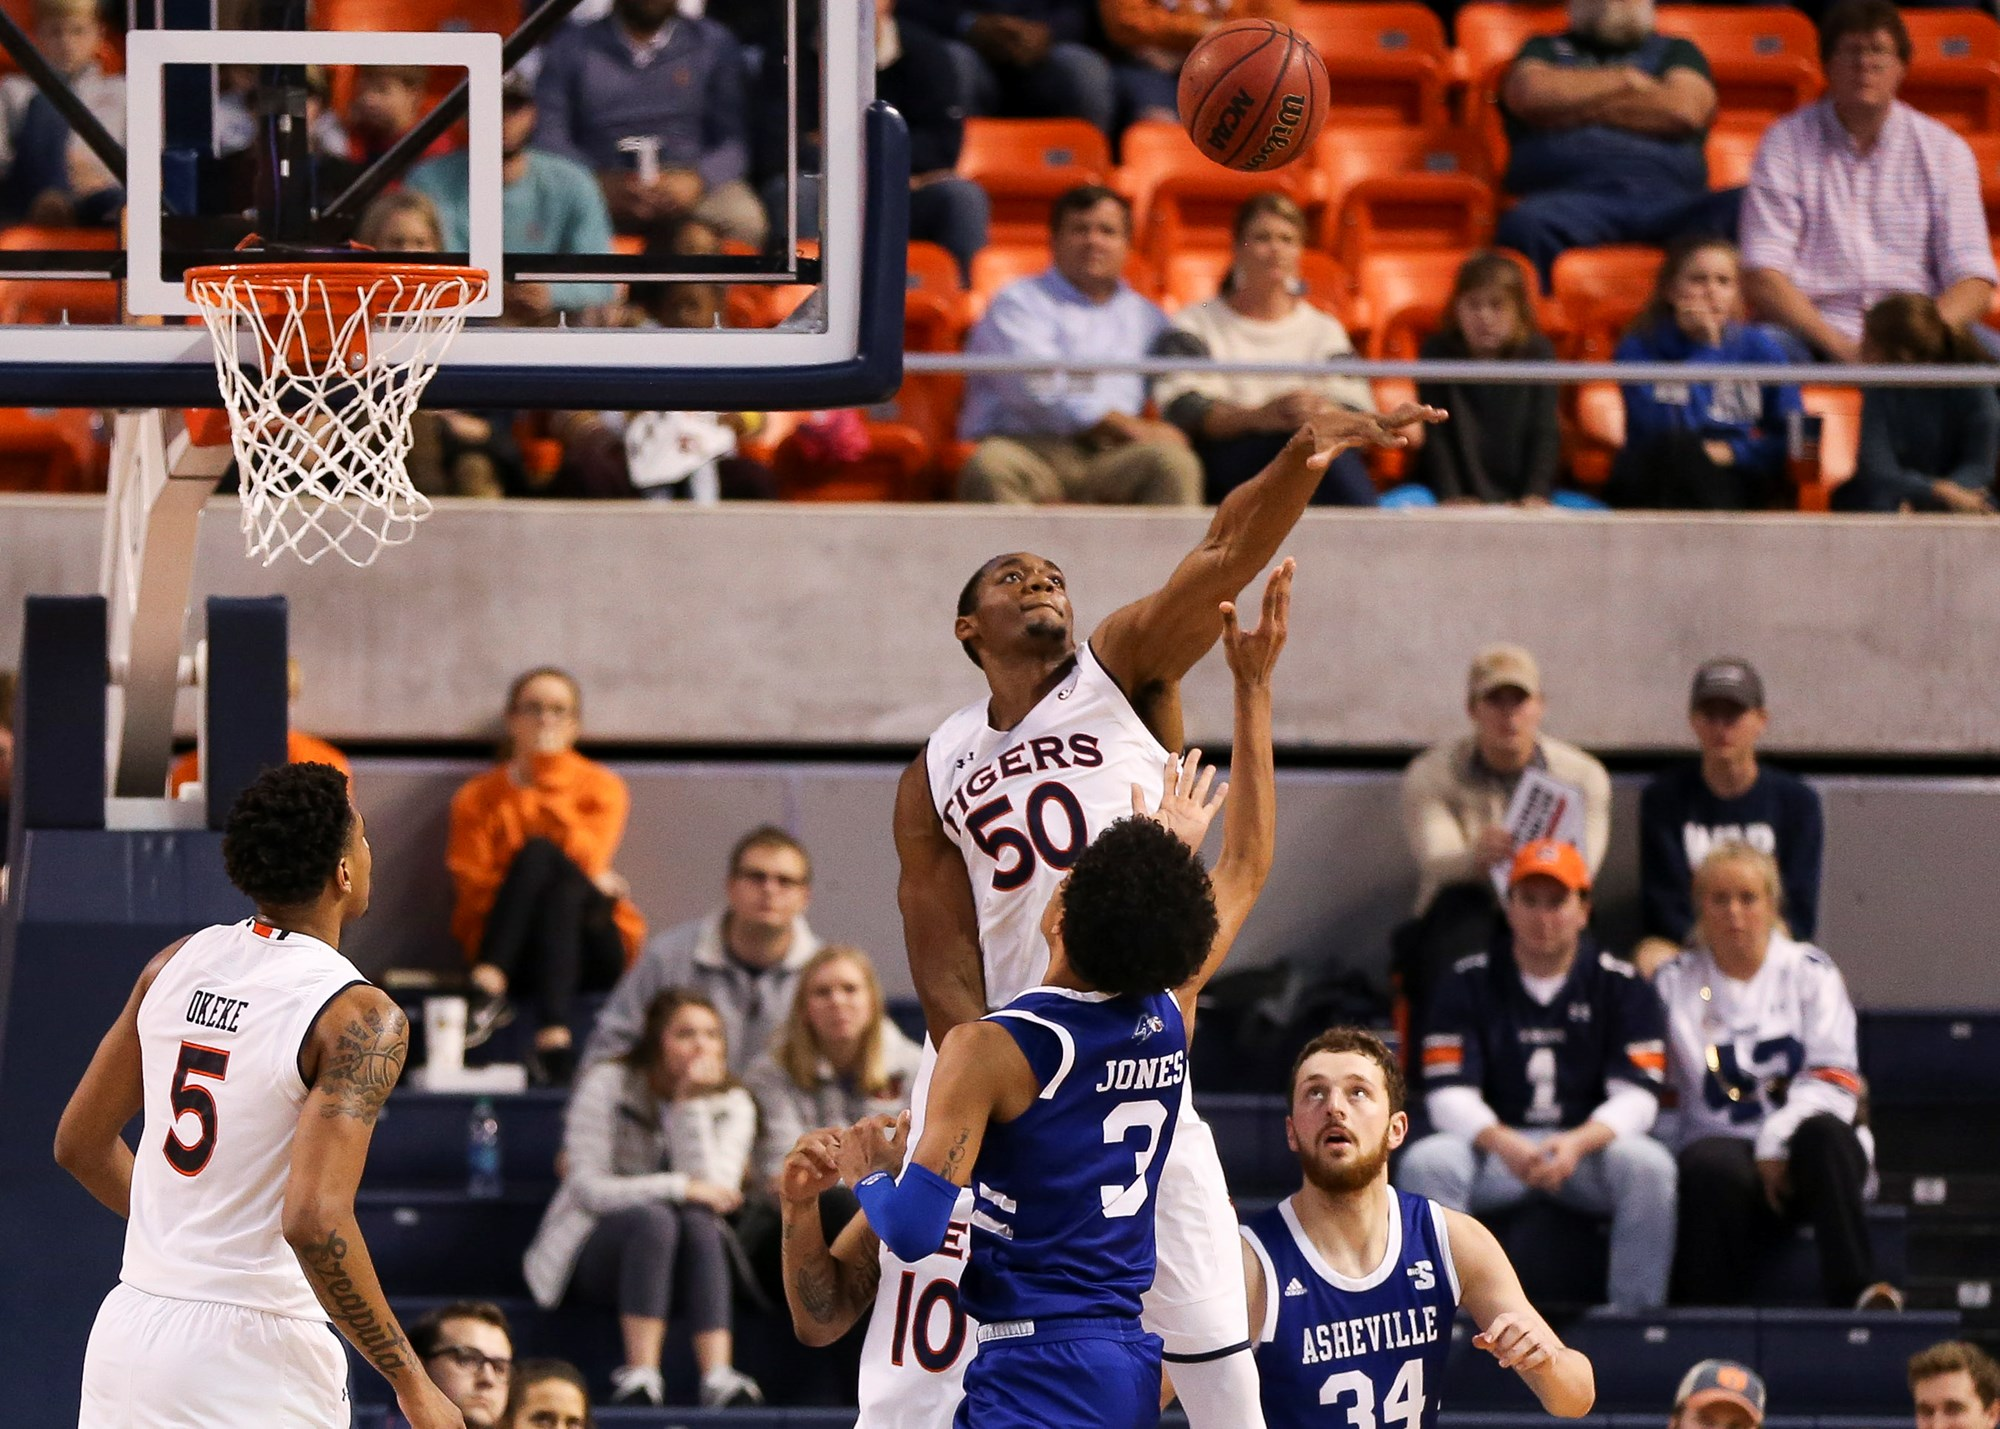 defense dominates in 67-41 win over unc asheville - auburn